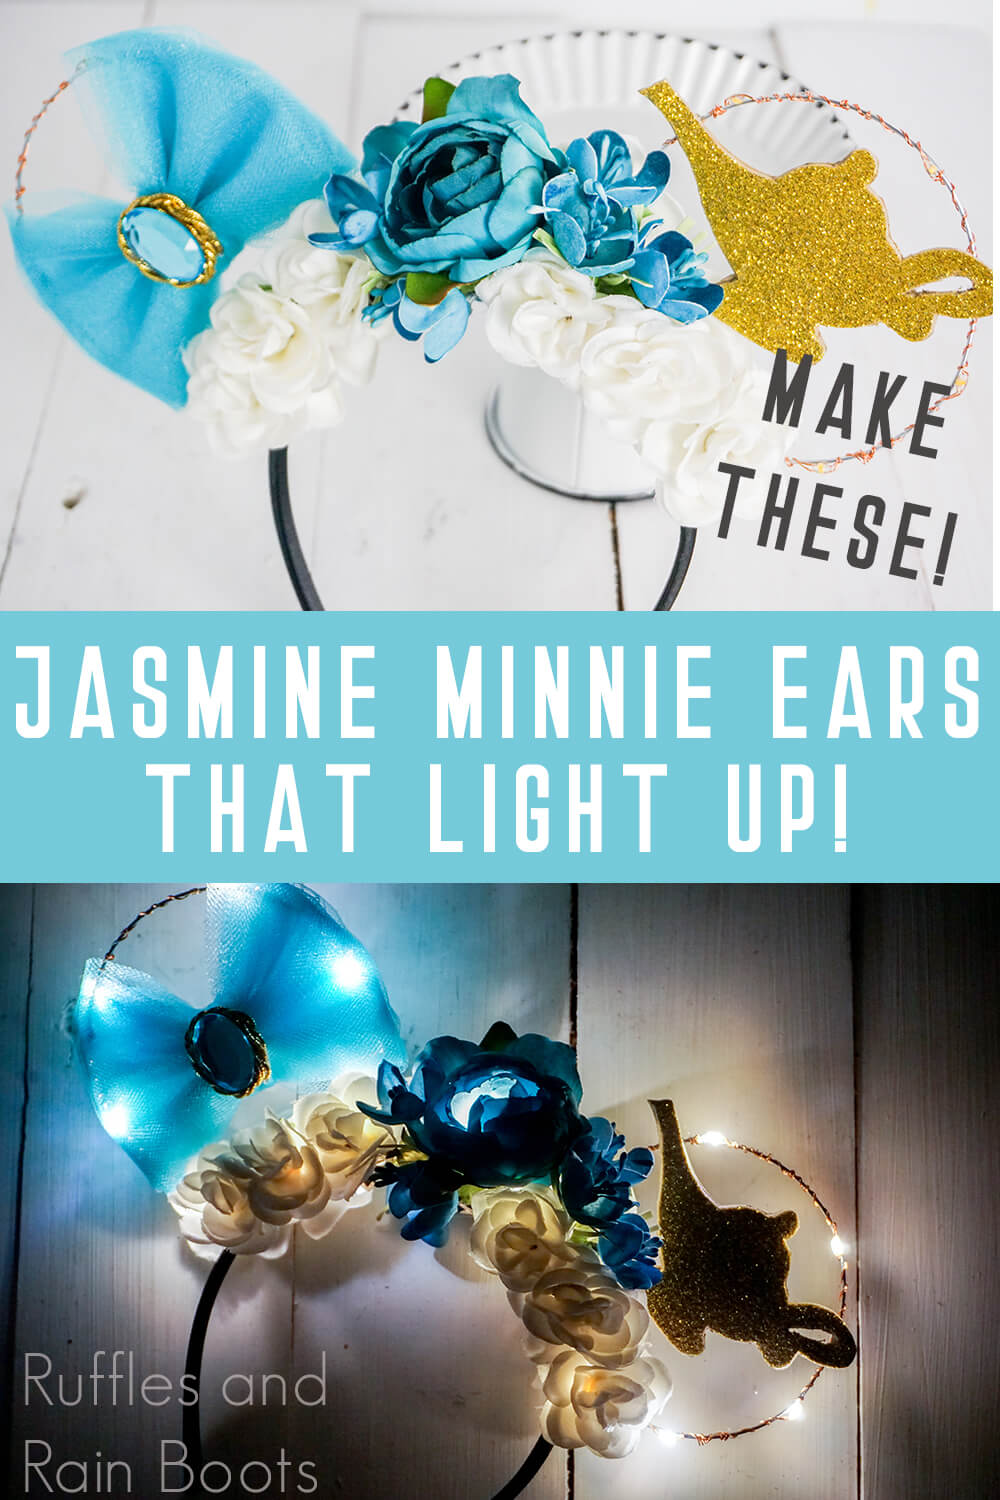 photo collage of floral light-up jasmine mickey ears glowing in the dark and on a white background with text which reads make these! jasmine minnie ears that light up